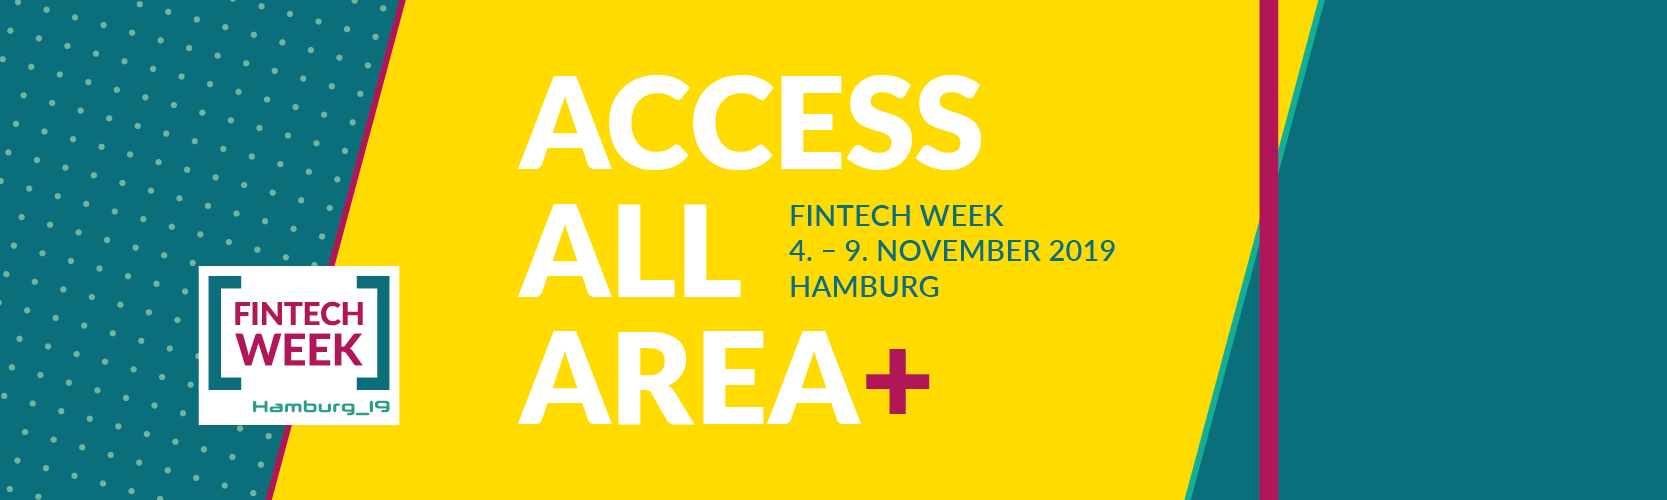 Access All Area Ticket für die Fintech Week 2019